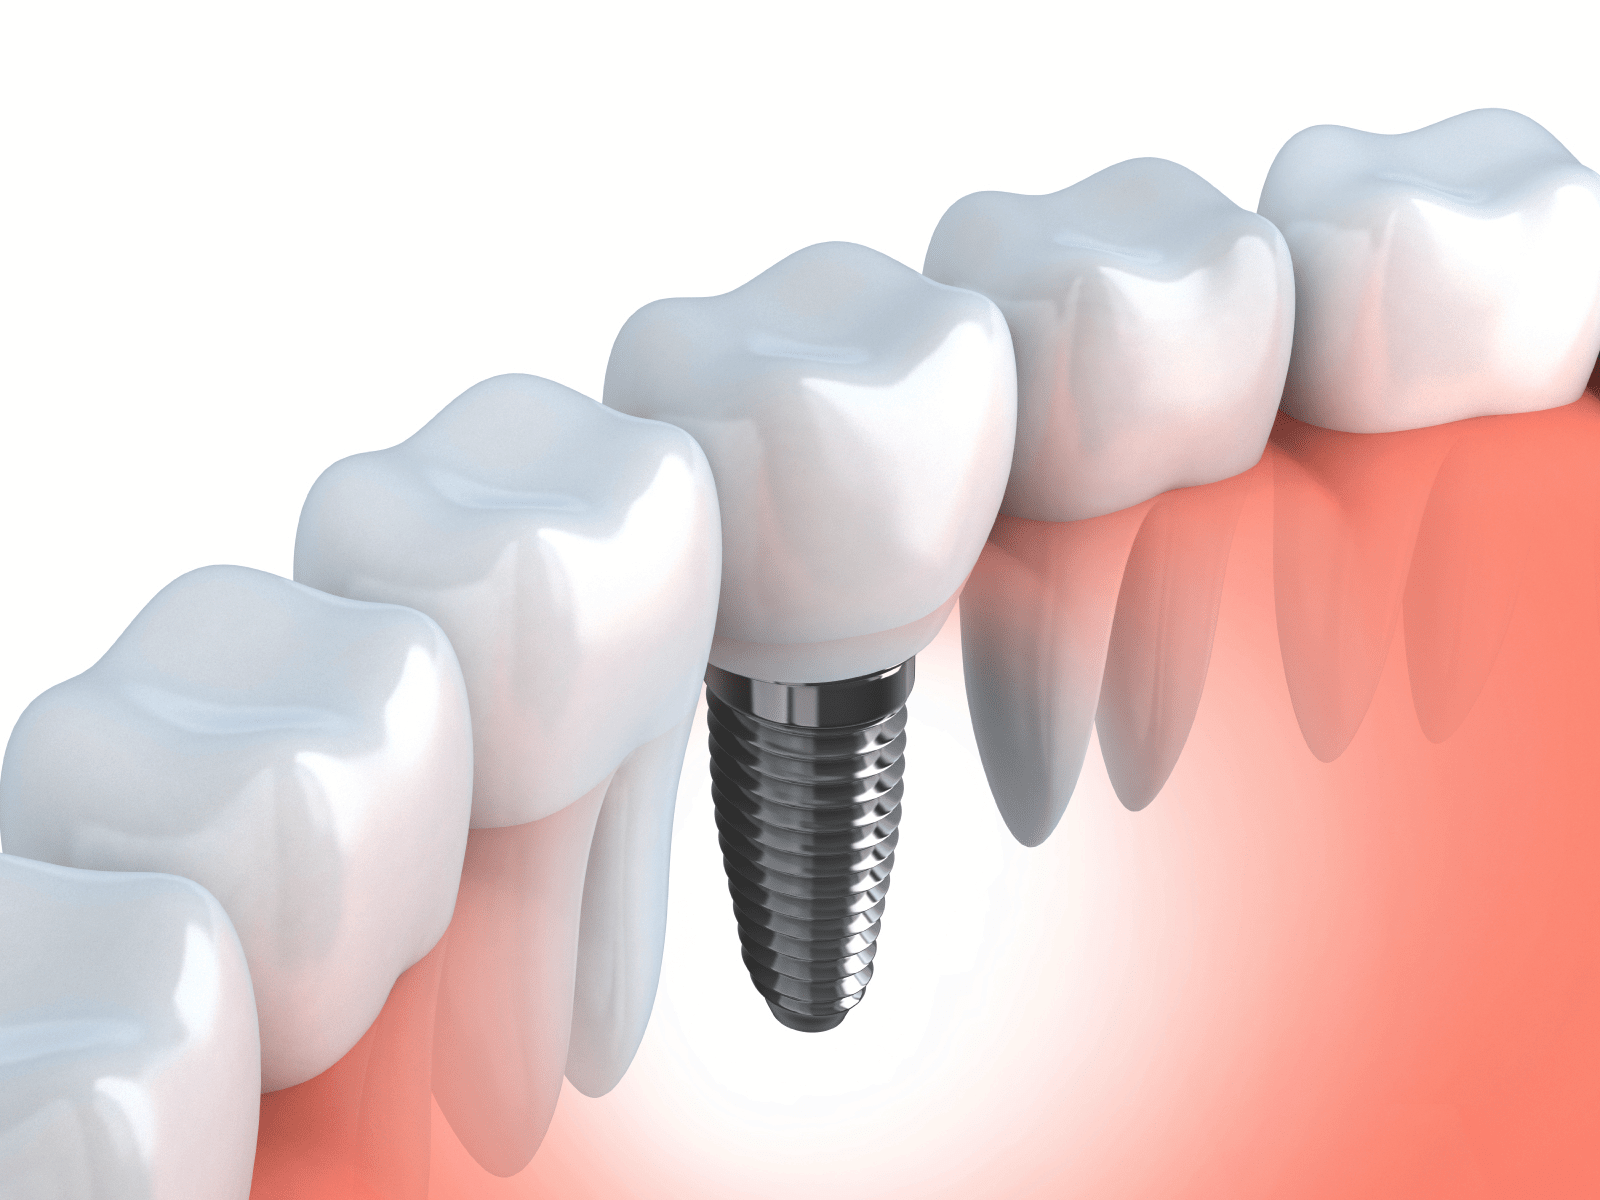 Illustration of a dental implant in the jaw